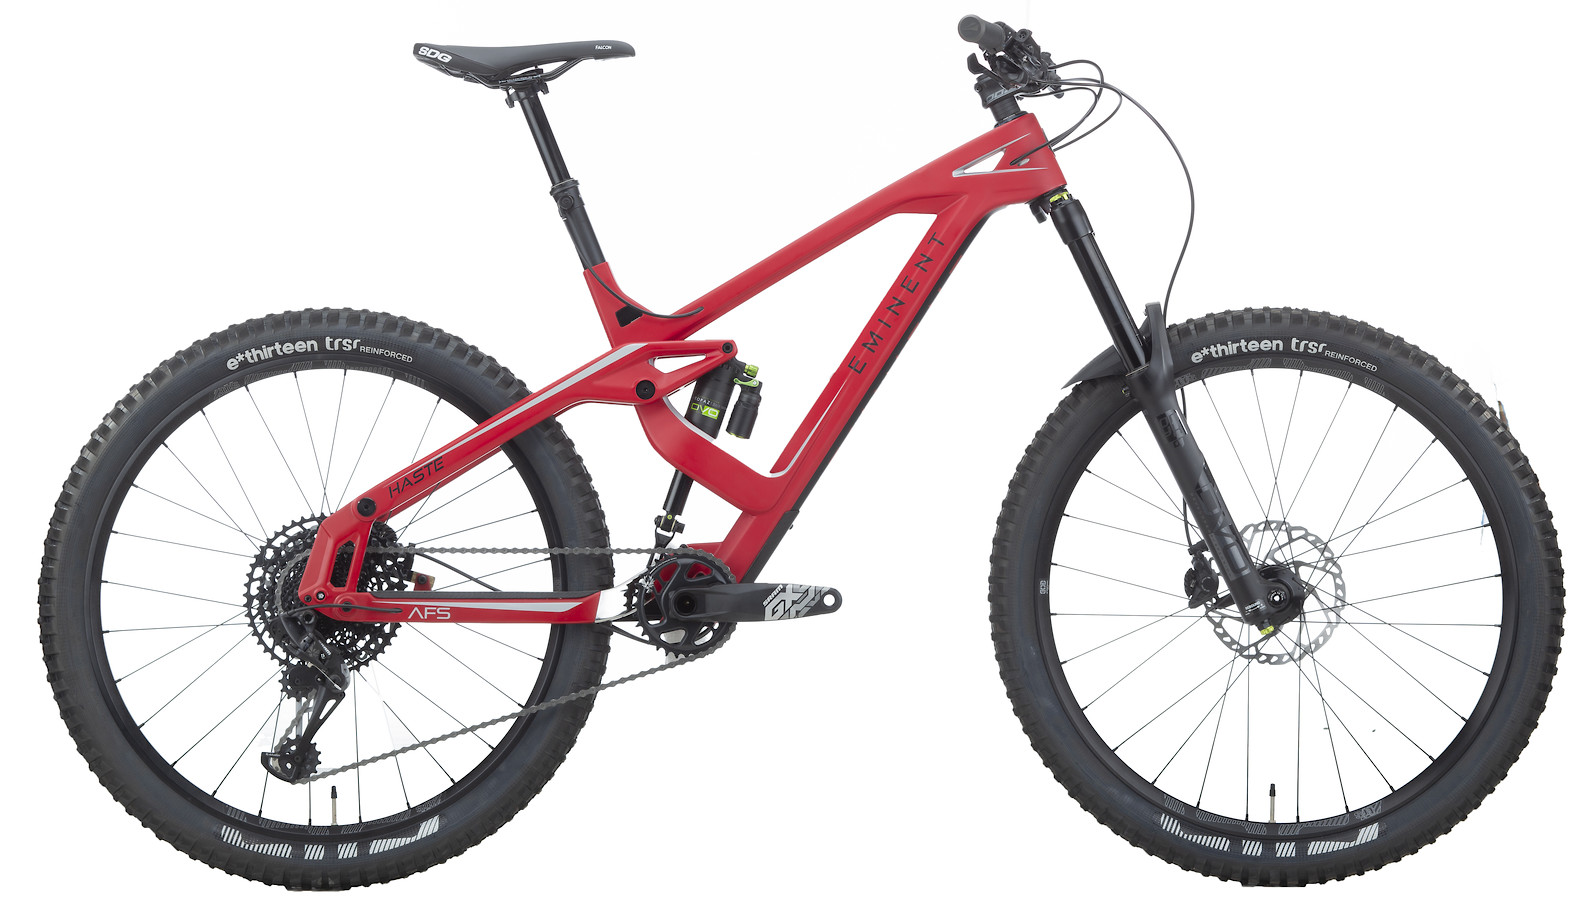 2019 Eminent Haste GX Eagle Jenson USA Exclusive - Red Metallic